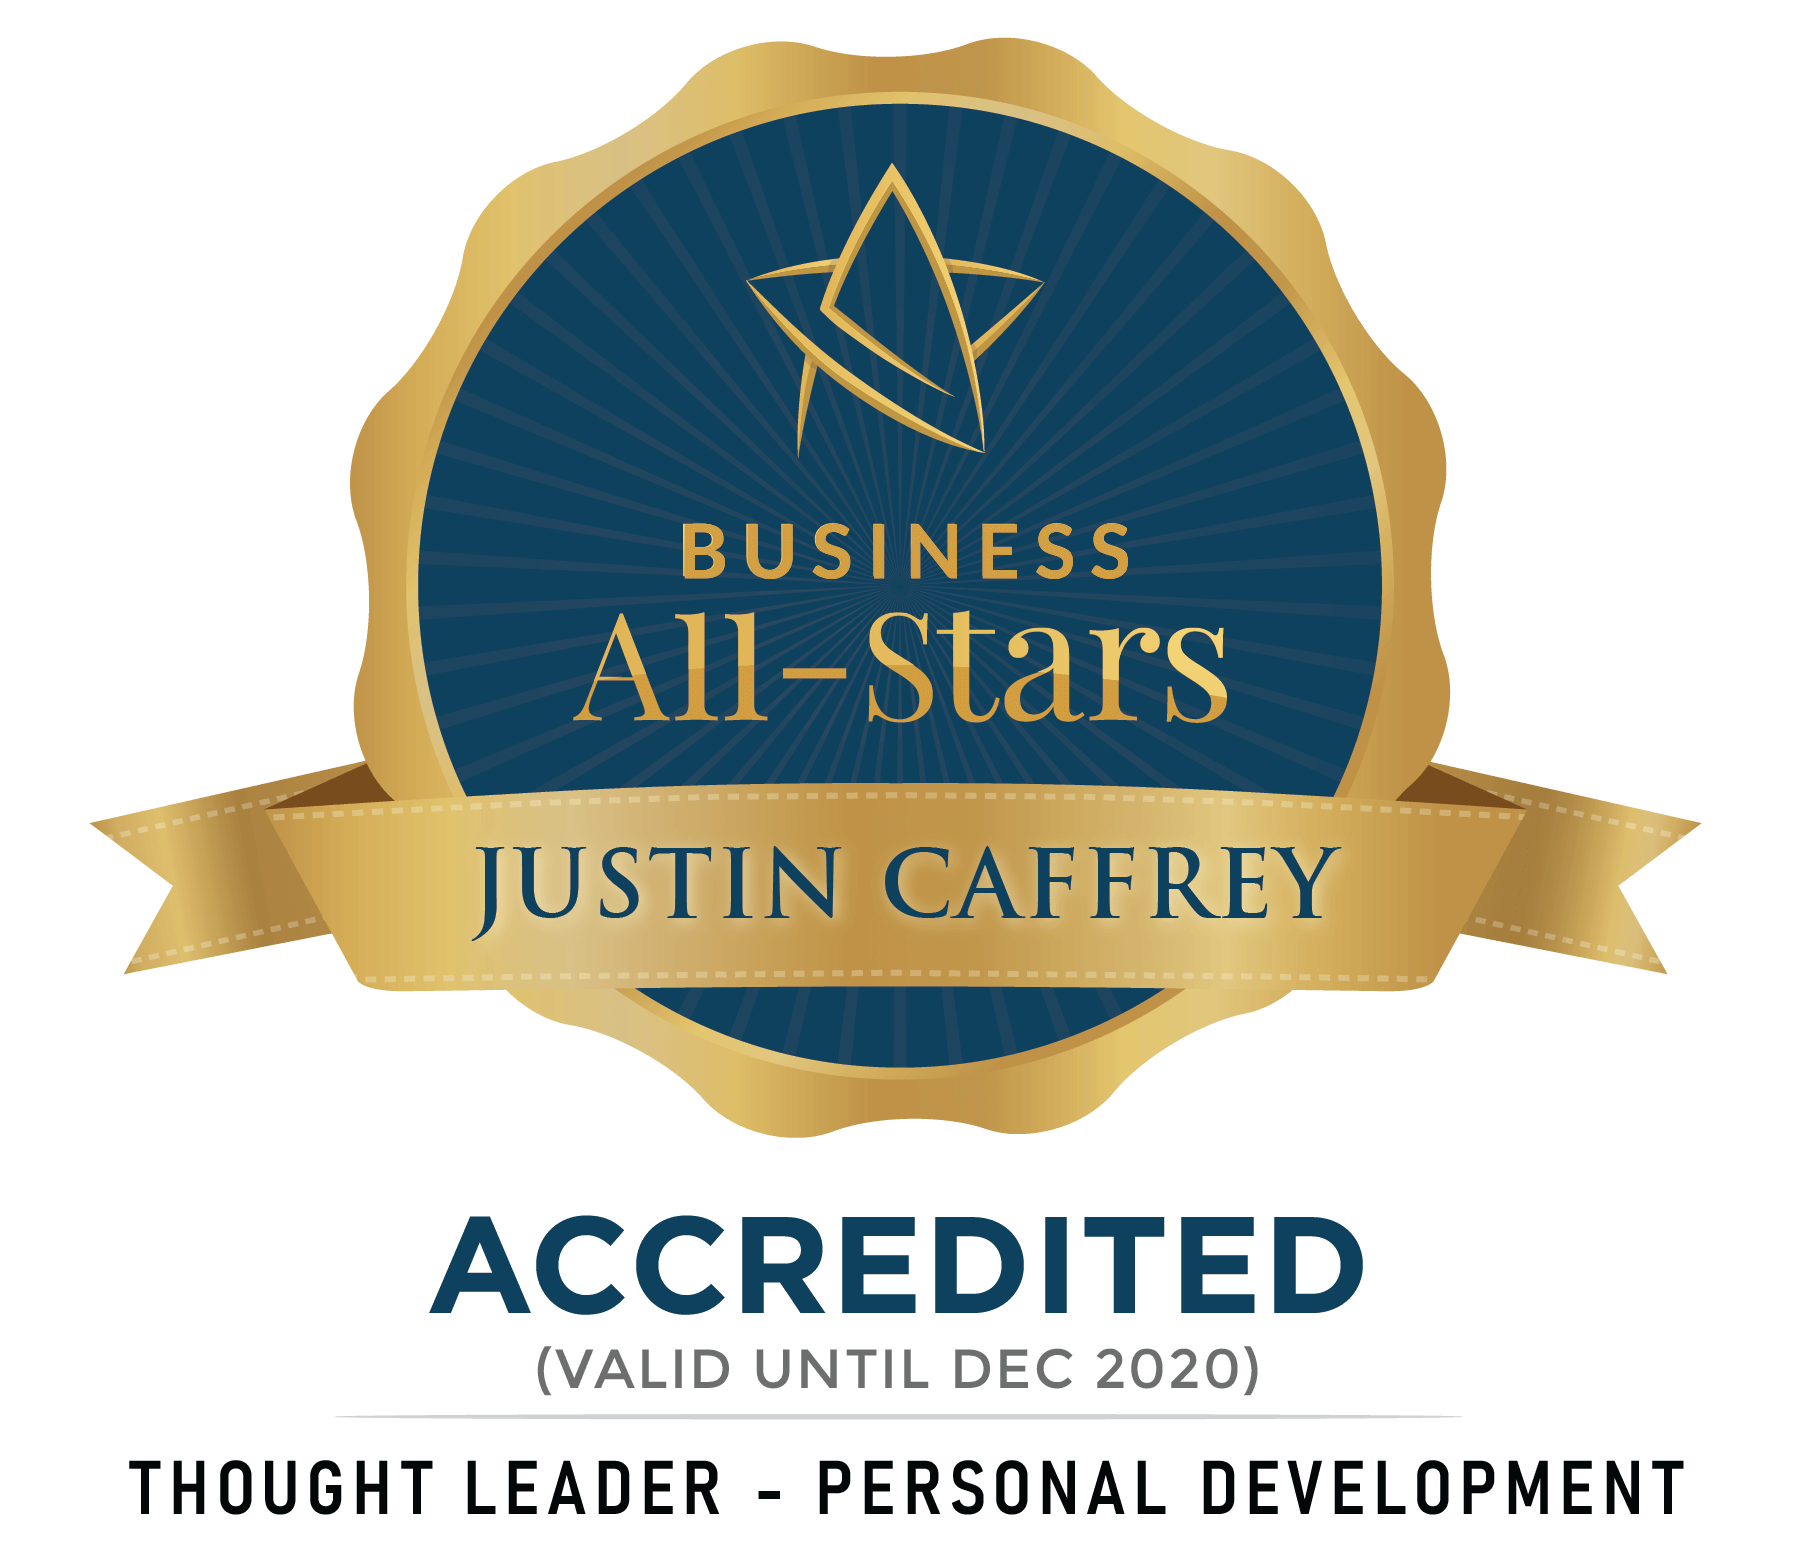 Justin Caffrey - Justin Caffrey Global Ltd - Business All-Stars Accreditation